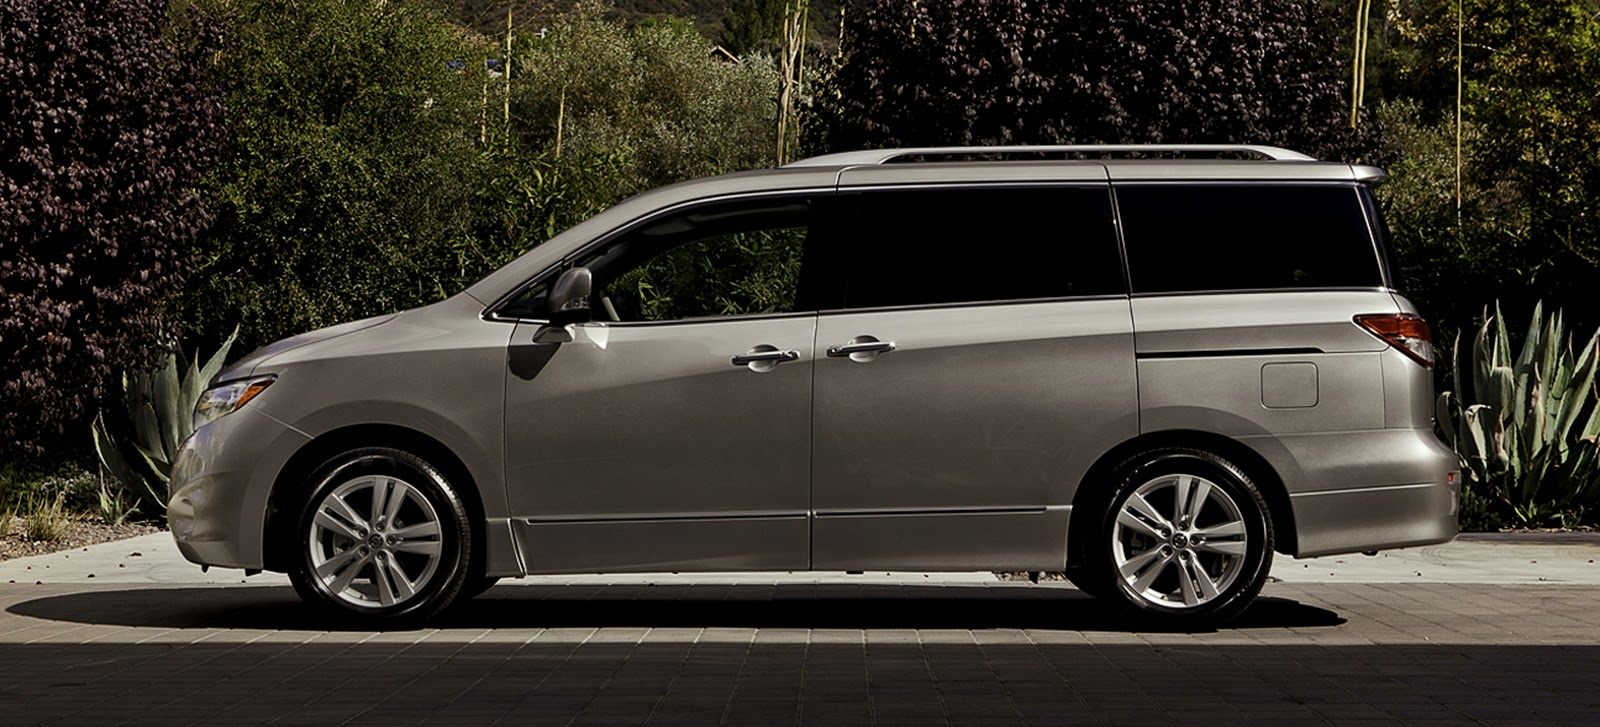 New nissan quest wants to be the parenting minivan